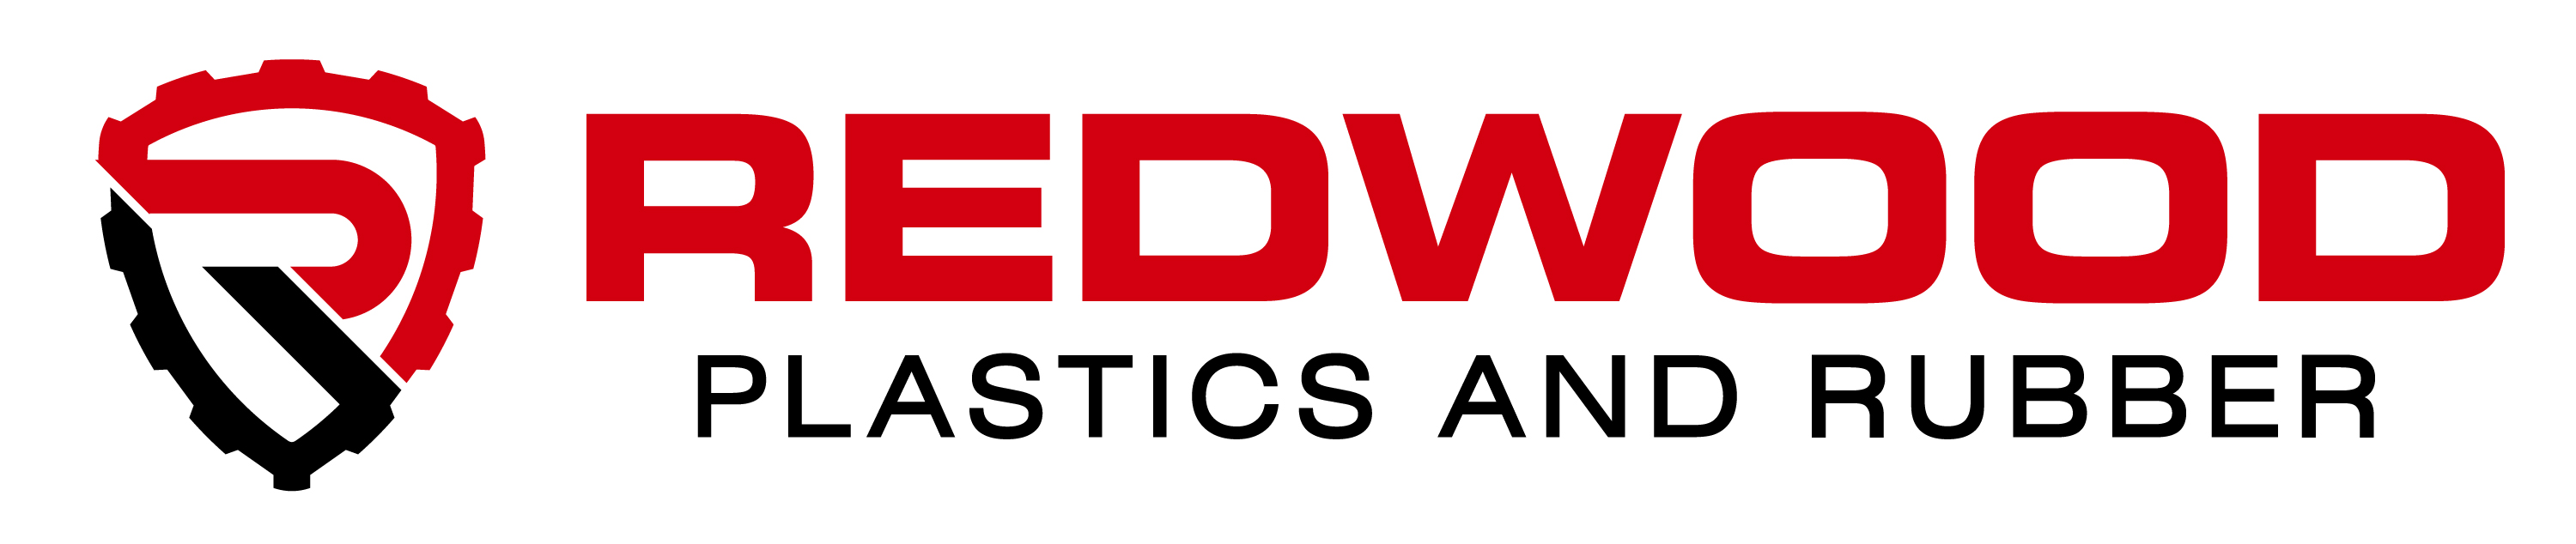 Redwood Plastics and Rubber Logo